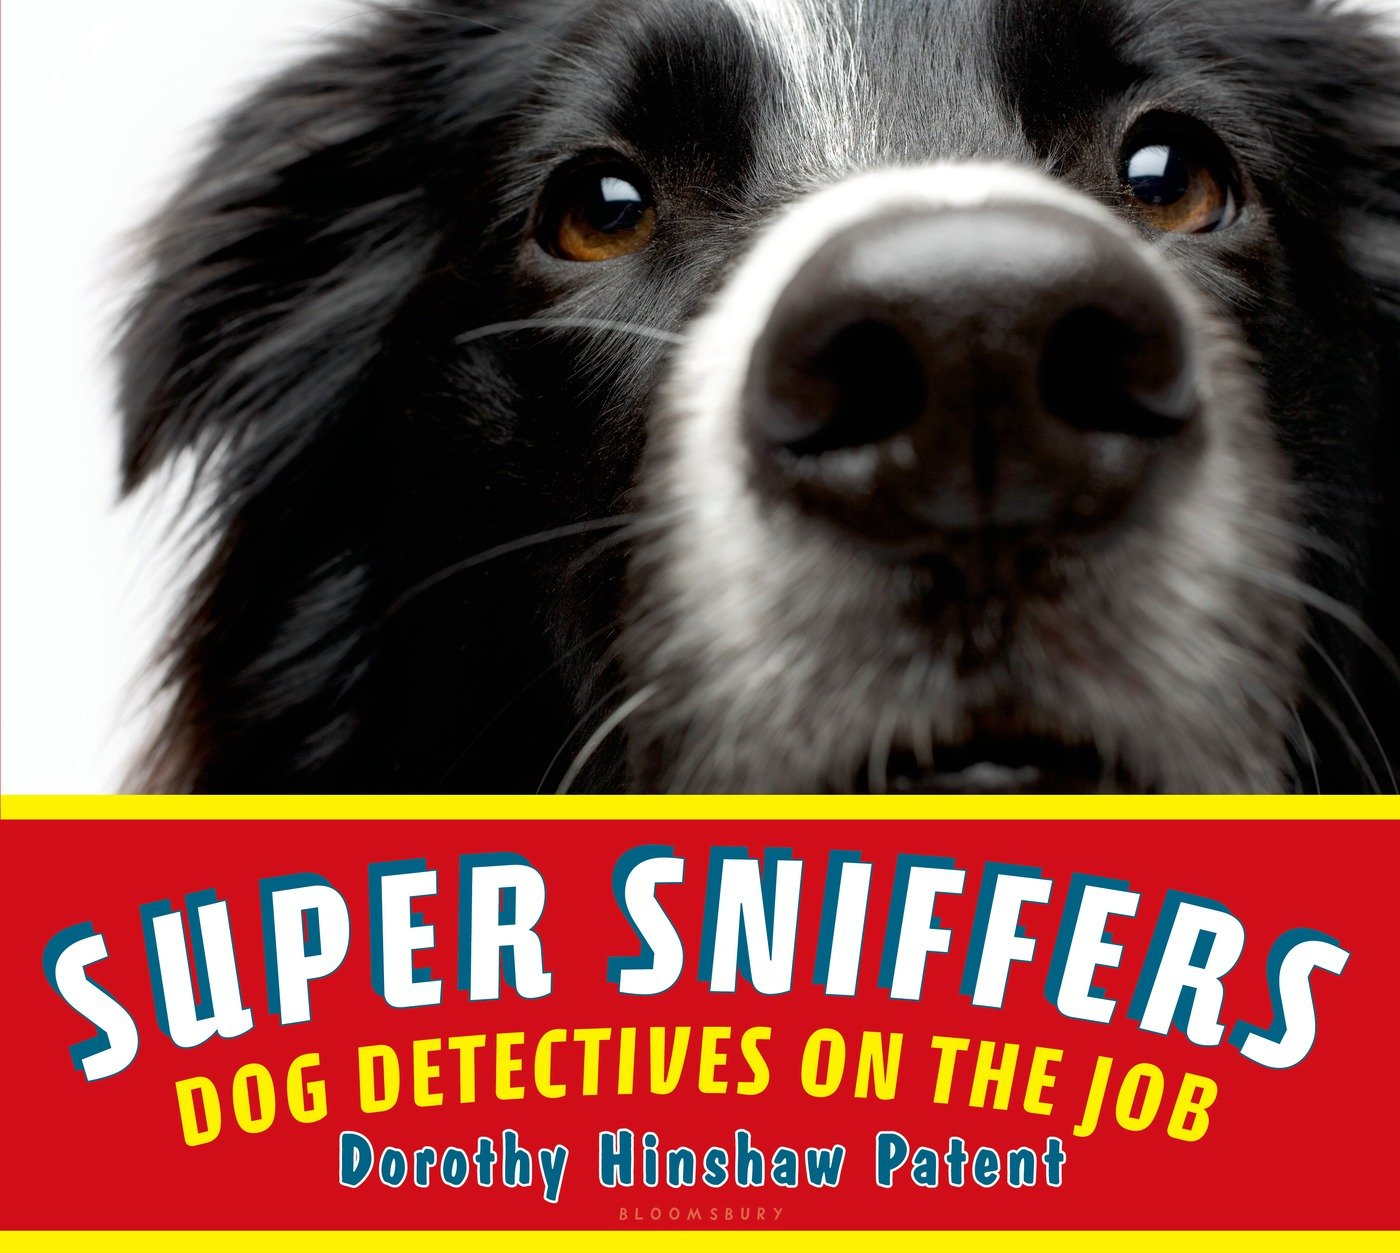 Super Sniffers Dog Detectives Job product image